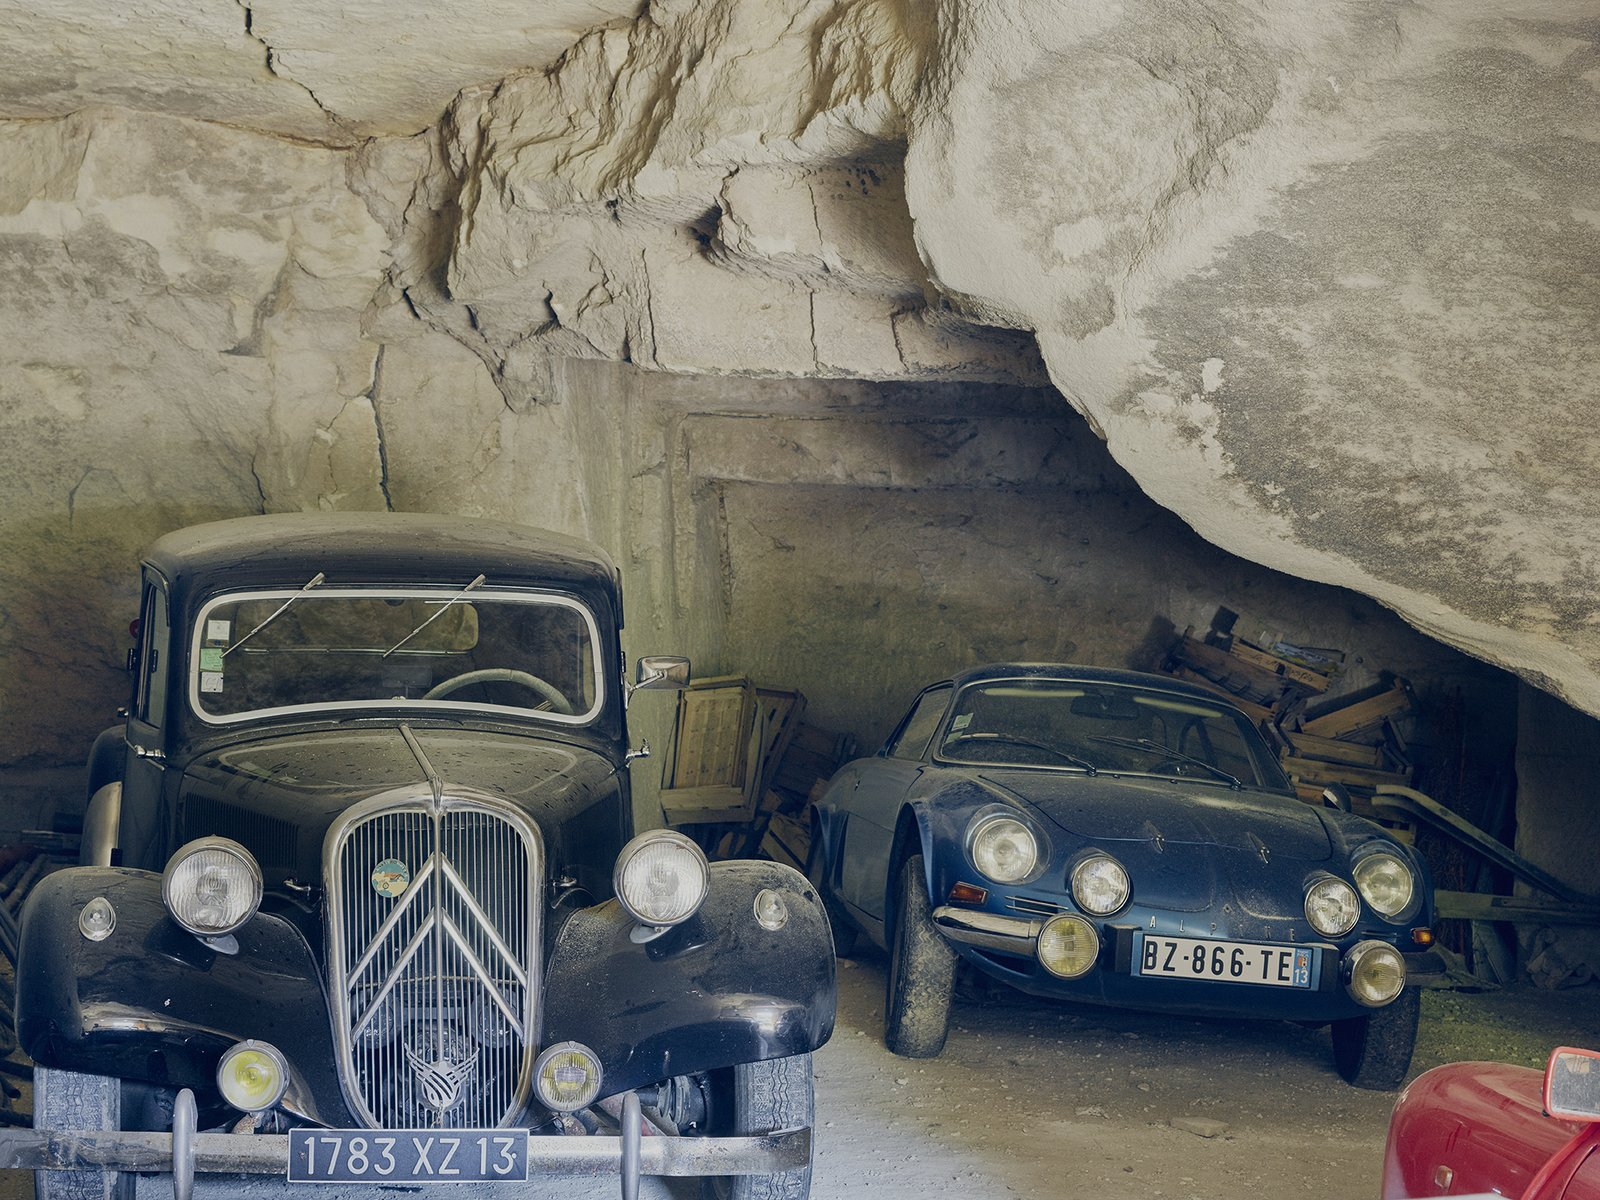 The fleet includes a ruby-red Renault Dauphine and a black Citroën Traction Avant. Tagged: Garage.  Photo 14 of 19 in Mine Dining